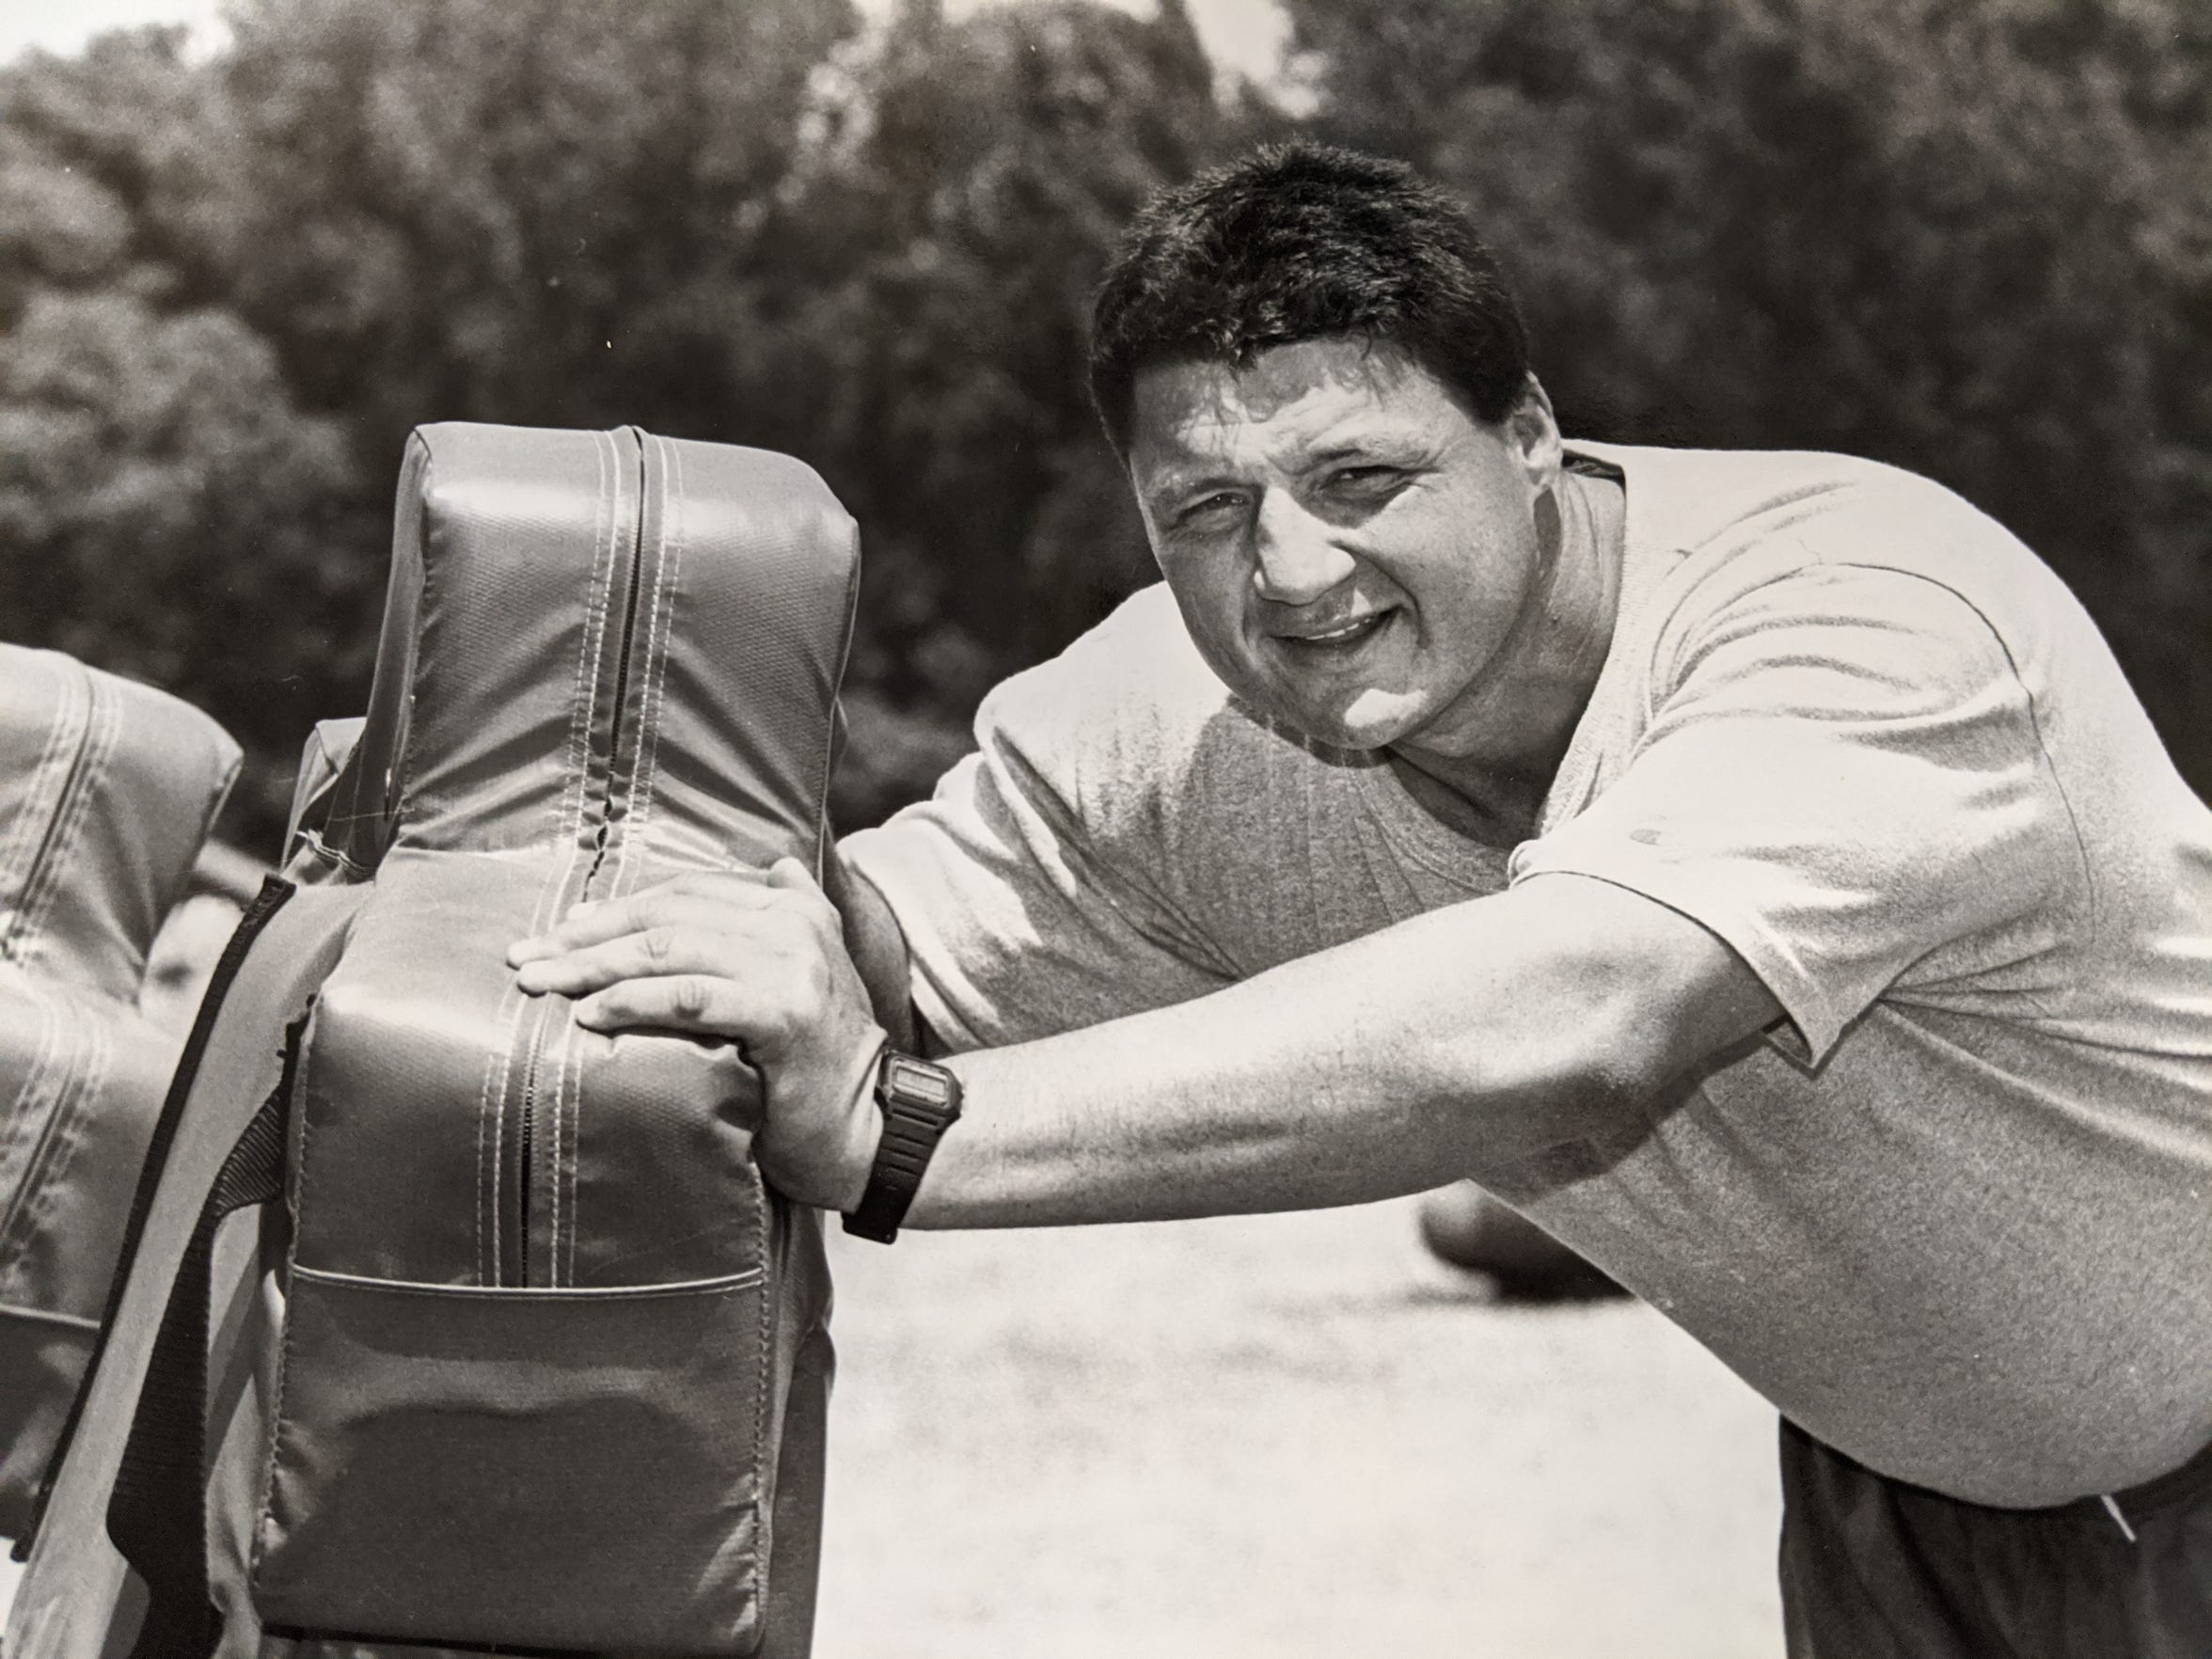 Ed Orgeron's first coaching opportunity at an SEC school came from Arkansas, who paid him $50 a month as their strength coach. Here, Orgeron leans on a tackling dummy at an unknown university practice field.